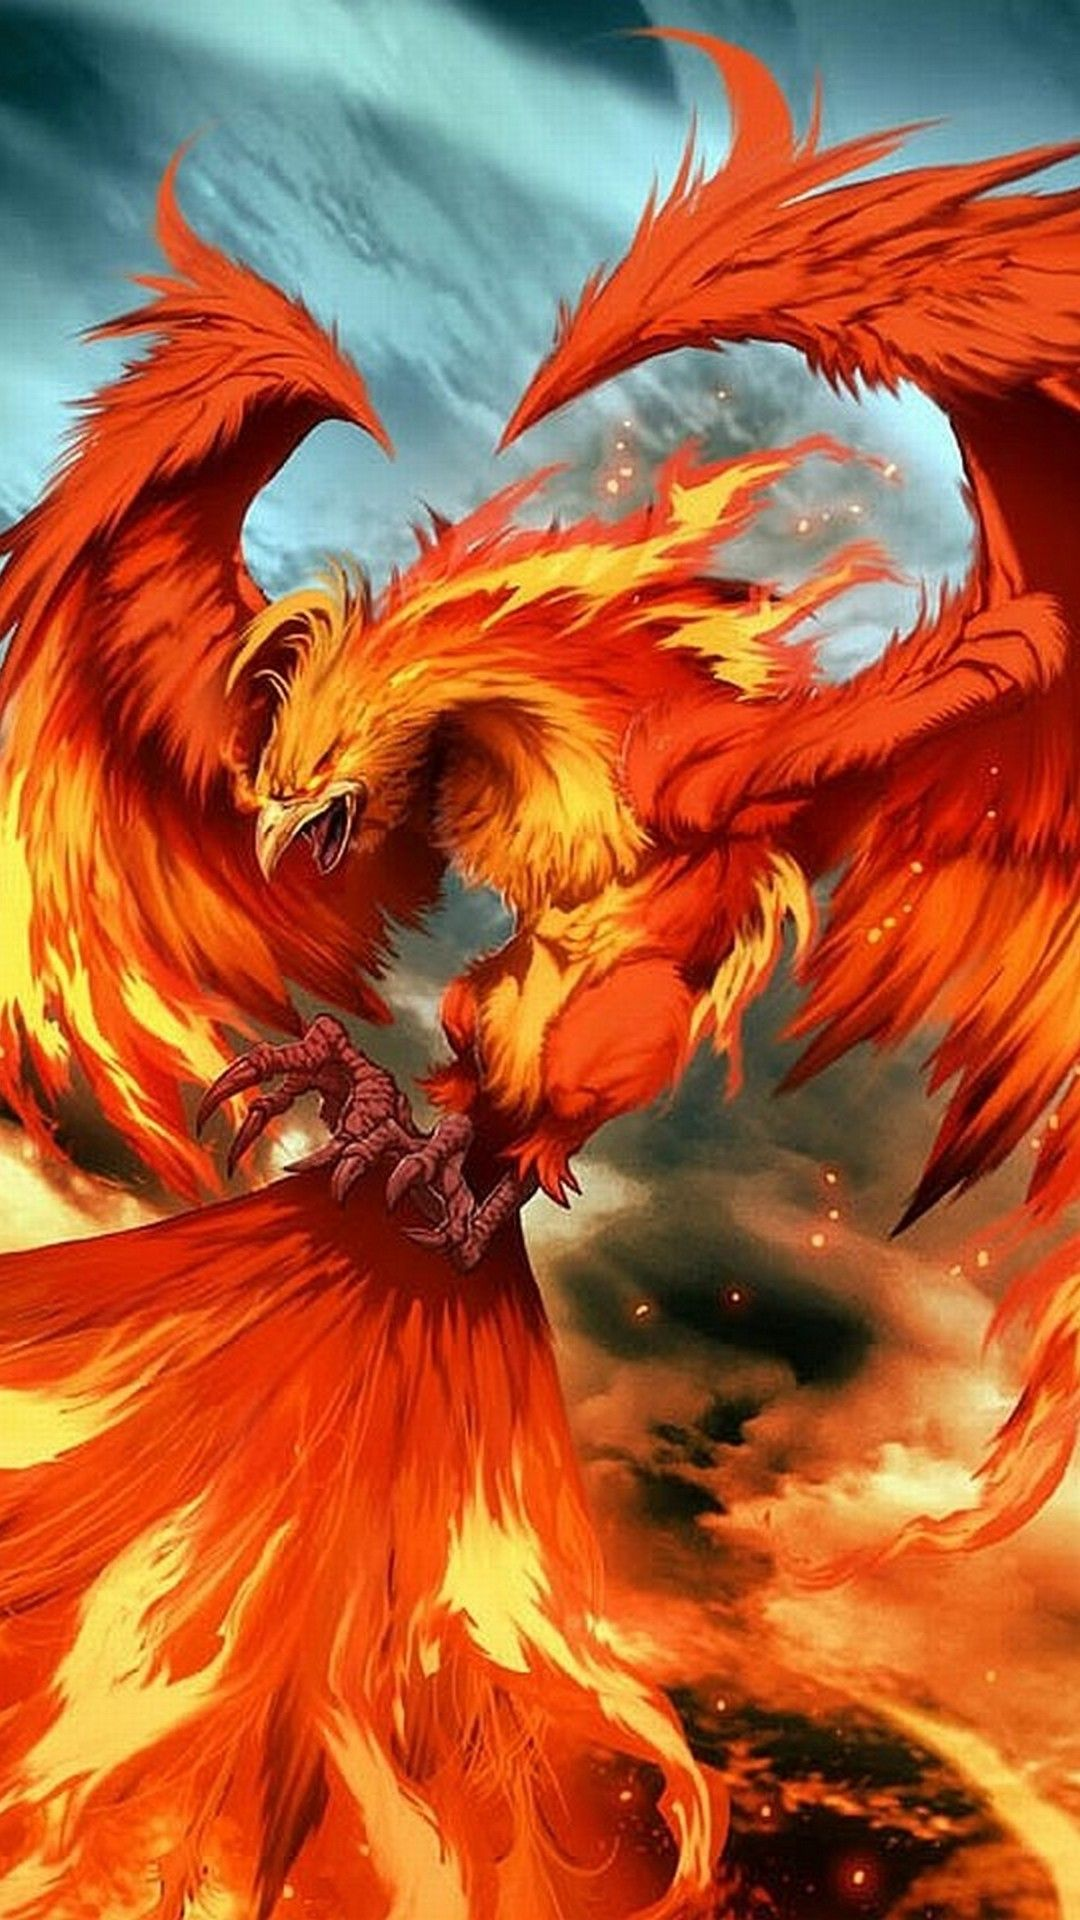 Phoenix images wallpaper for android best mobile wallpaper iphonewallpapers phoenix - Fenix bird hd images ...